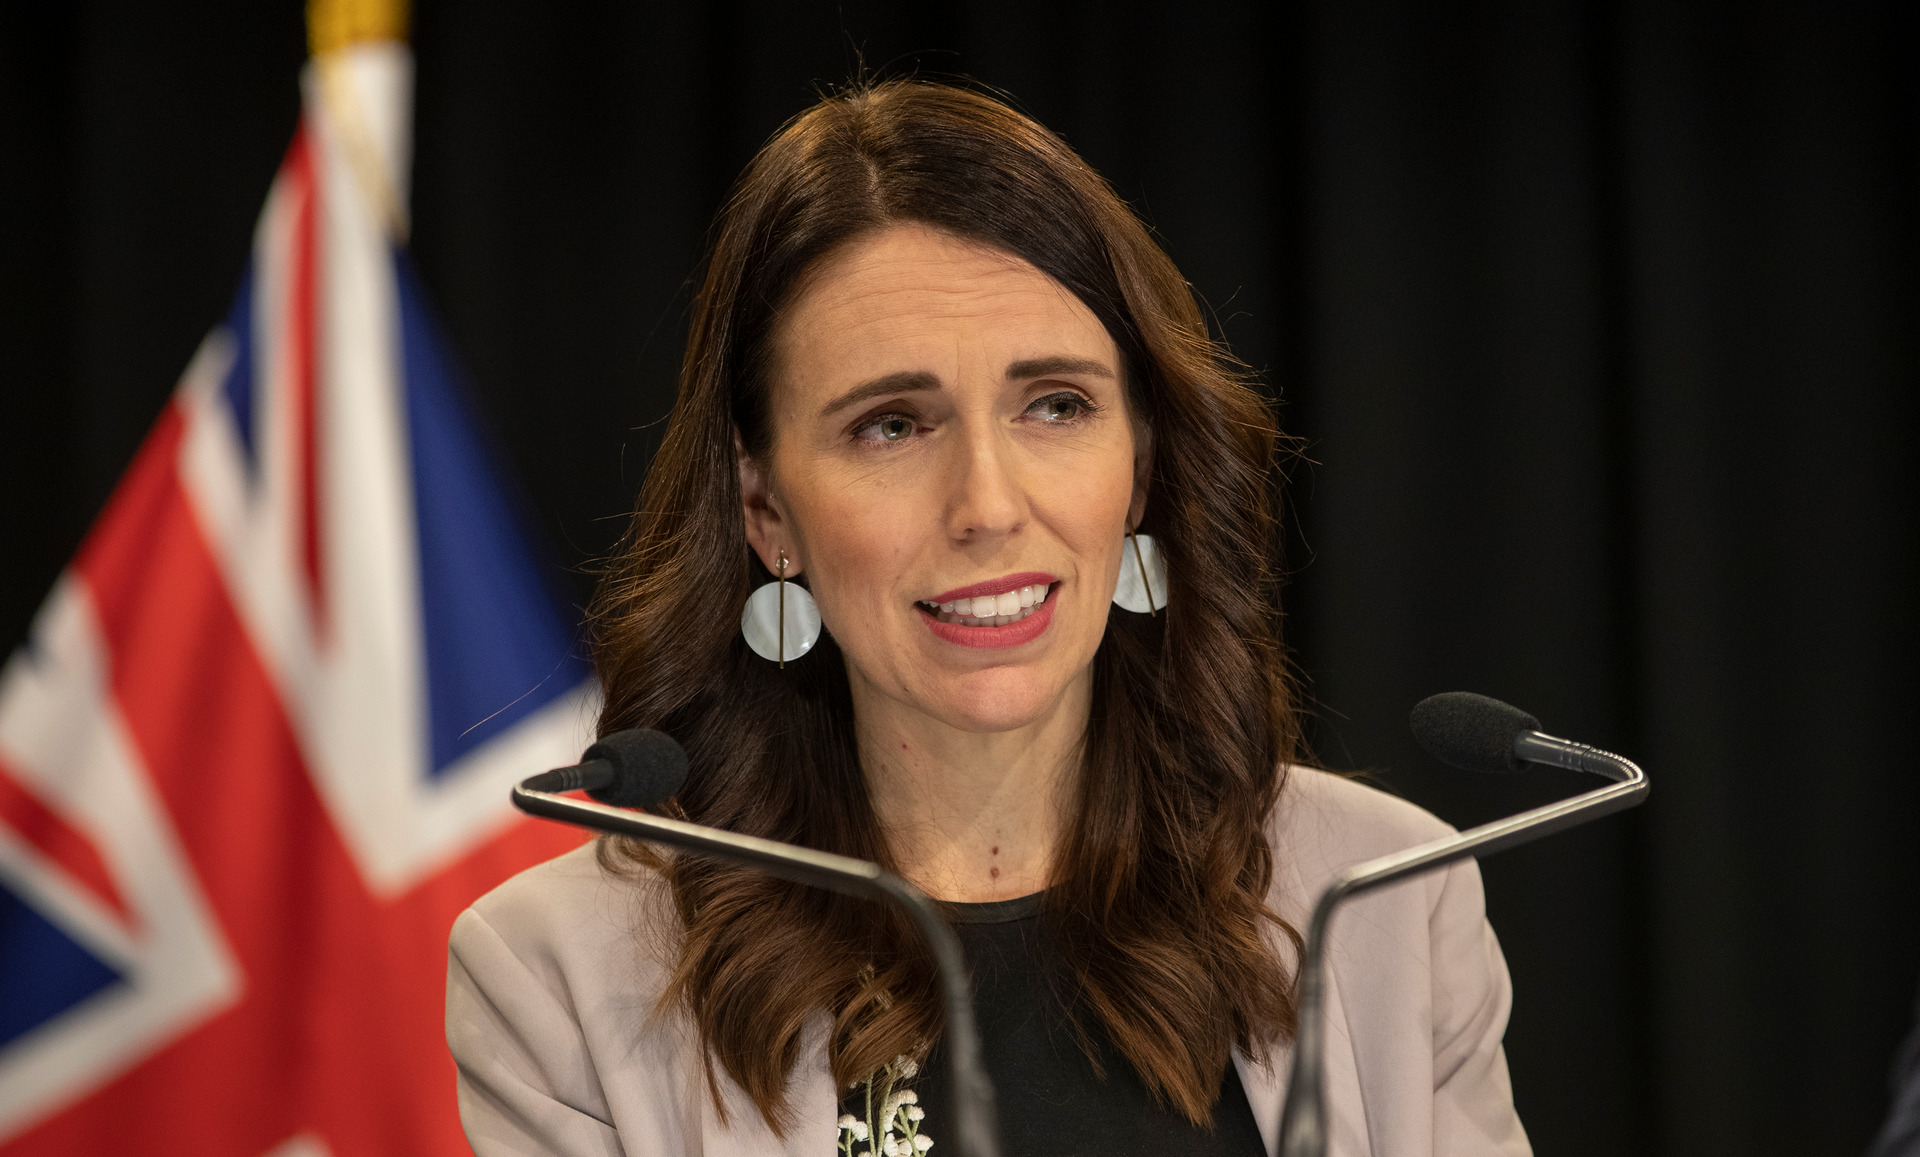 Prime Minister Jacinda Ardern labelled 'masterful' by US Presidential candidate